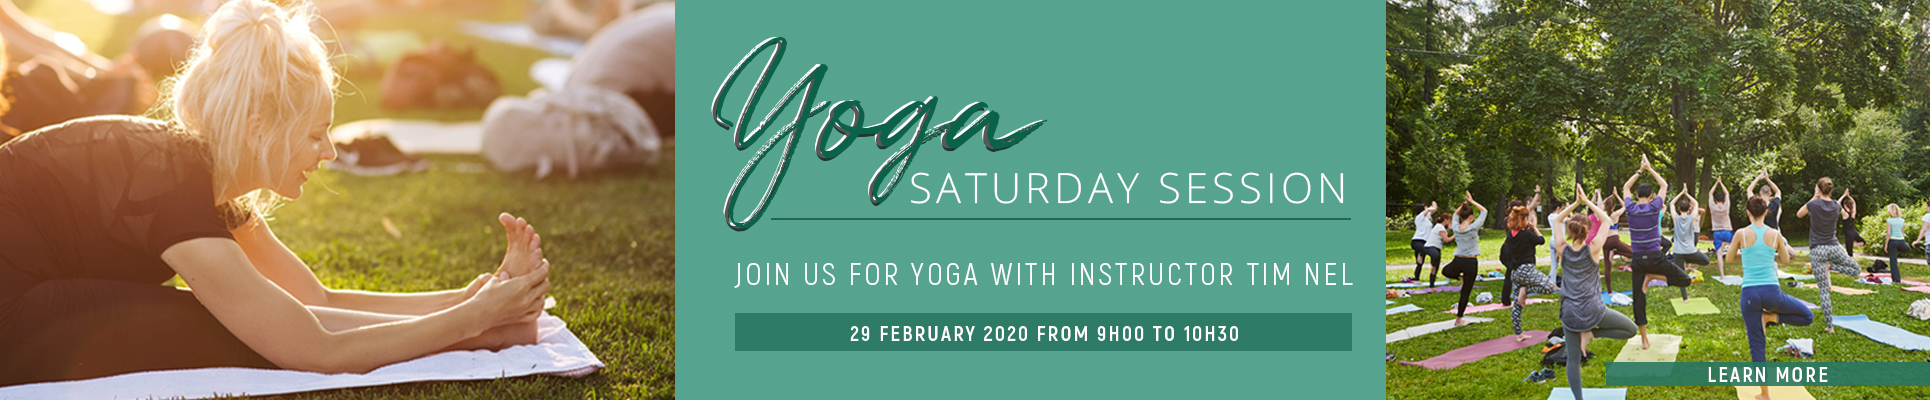 Misty Hills Country Hotel Saturday Yoga Sessions Gauteng Muldersdrift venues